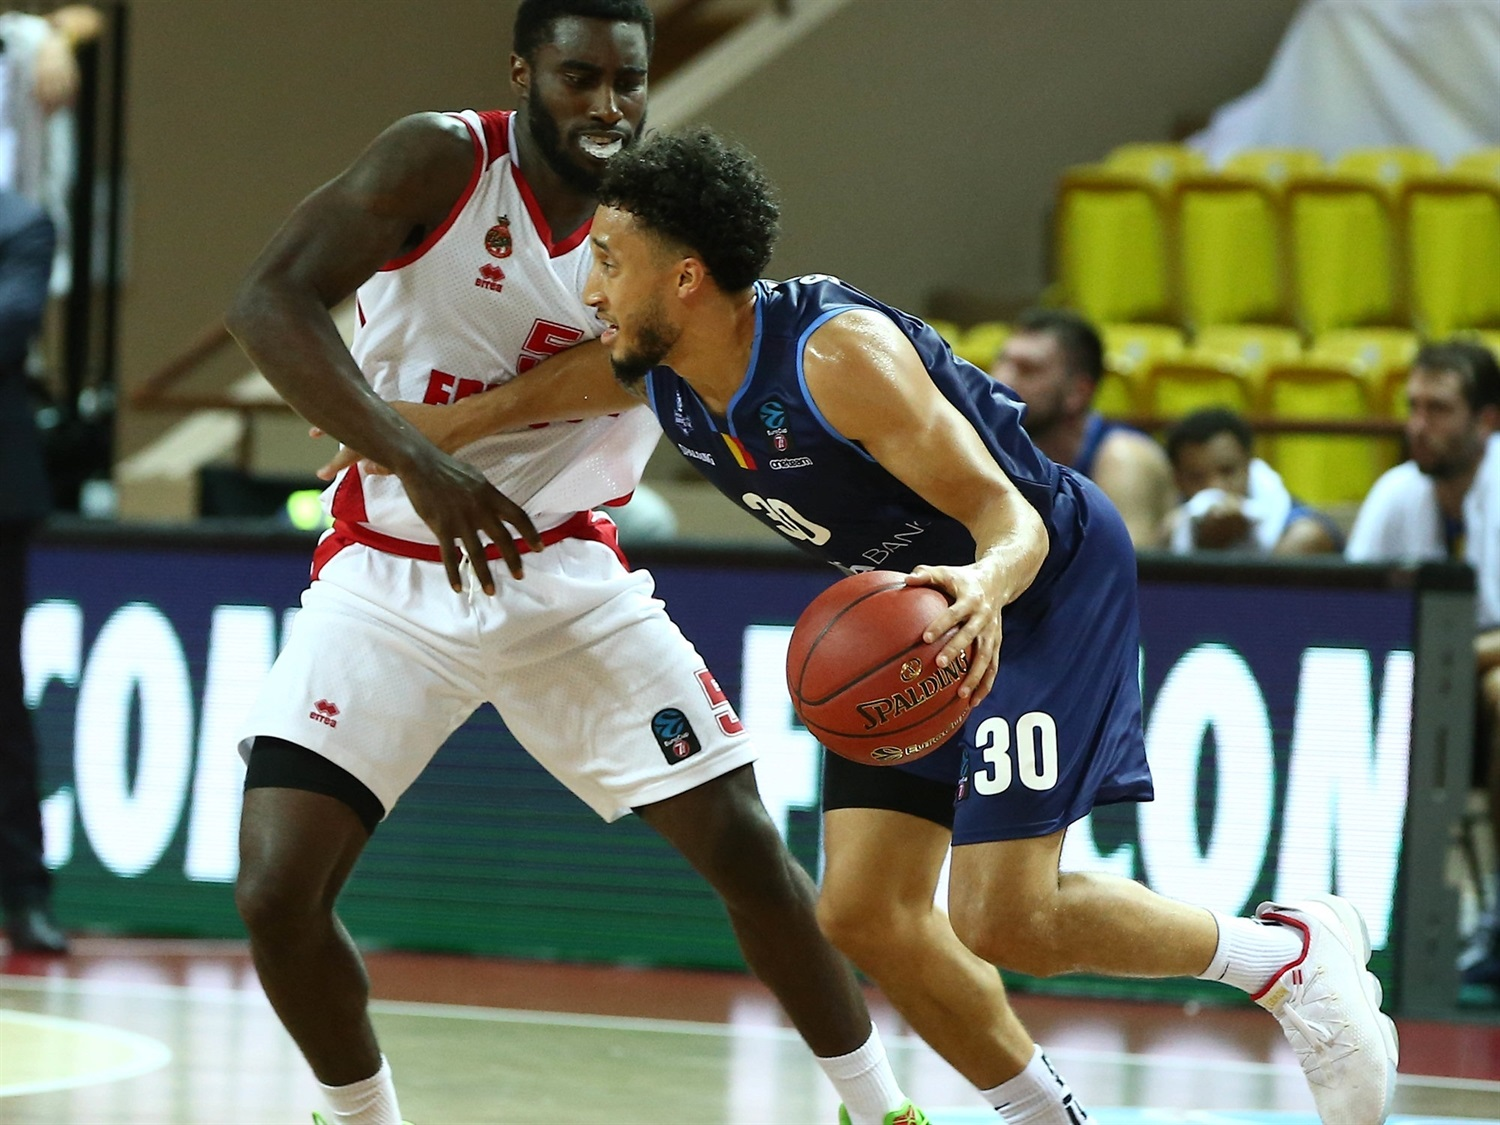 Jeremy Senglin - MoraBanc Andorra (photo Monaco) - EC19